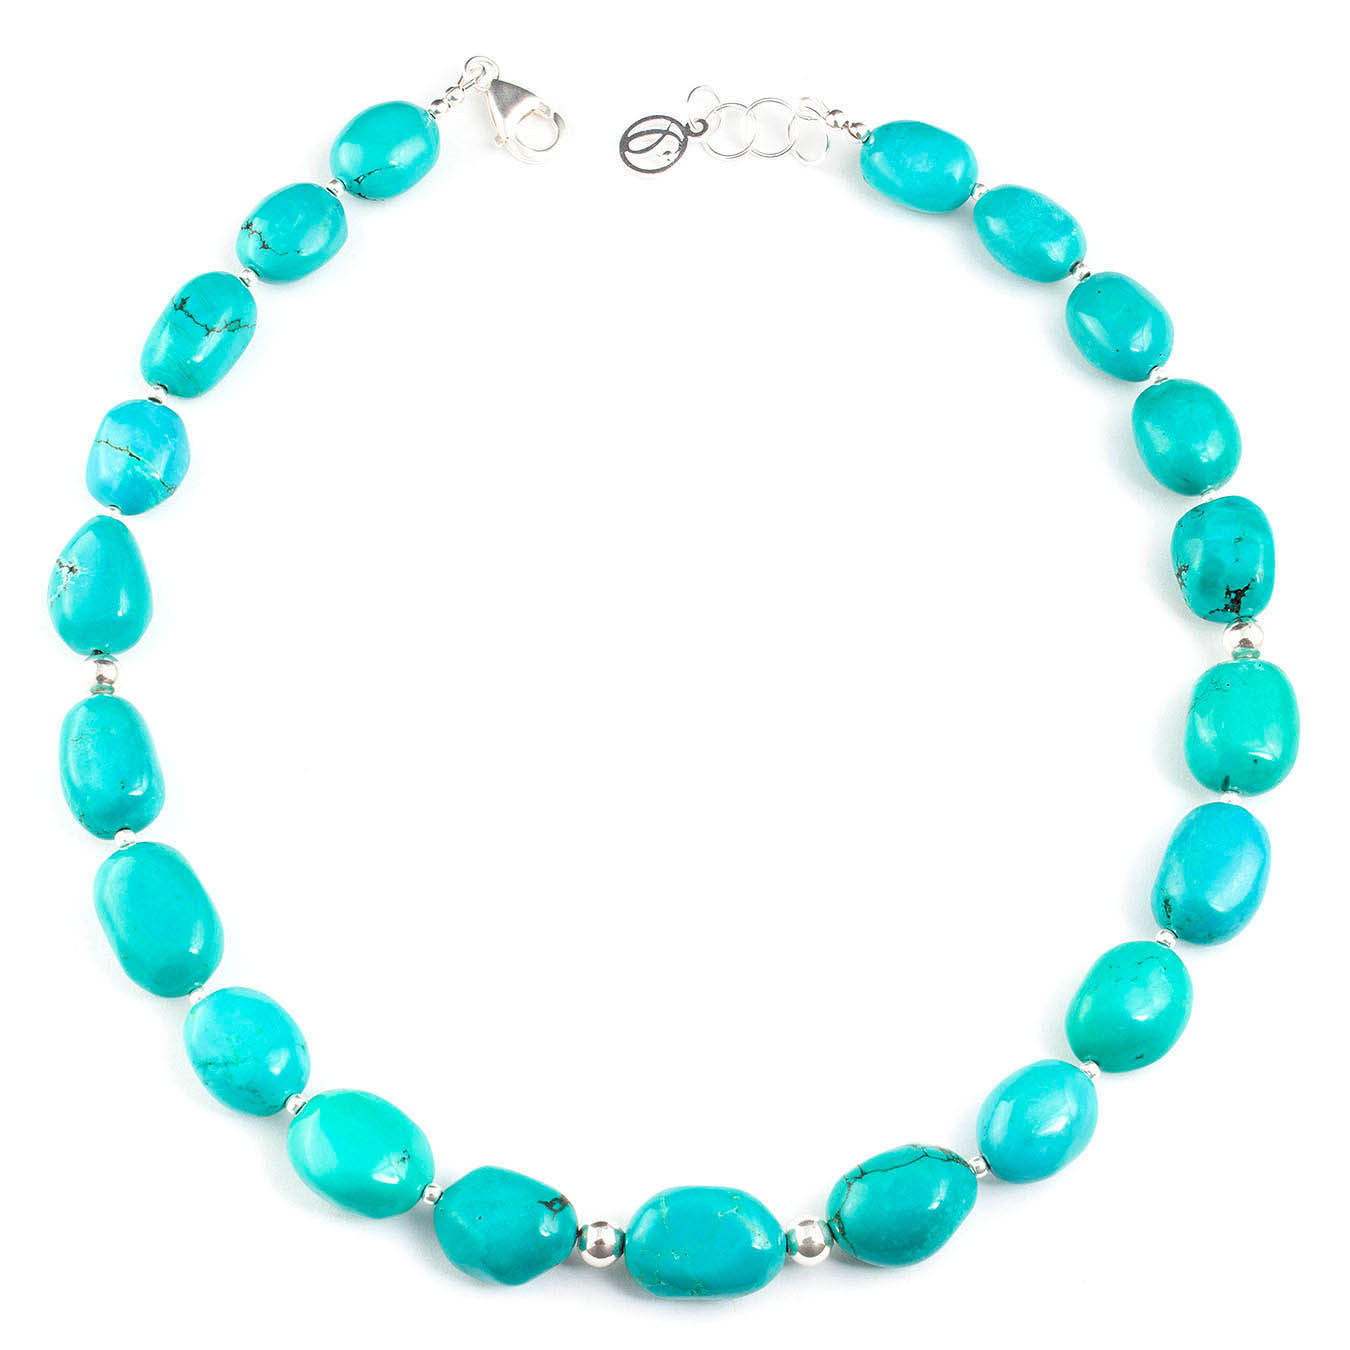 Chunky birthstone necklace set made with turquoise nuggets and silver